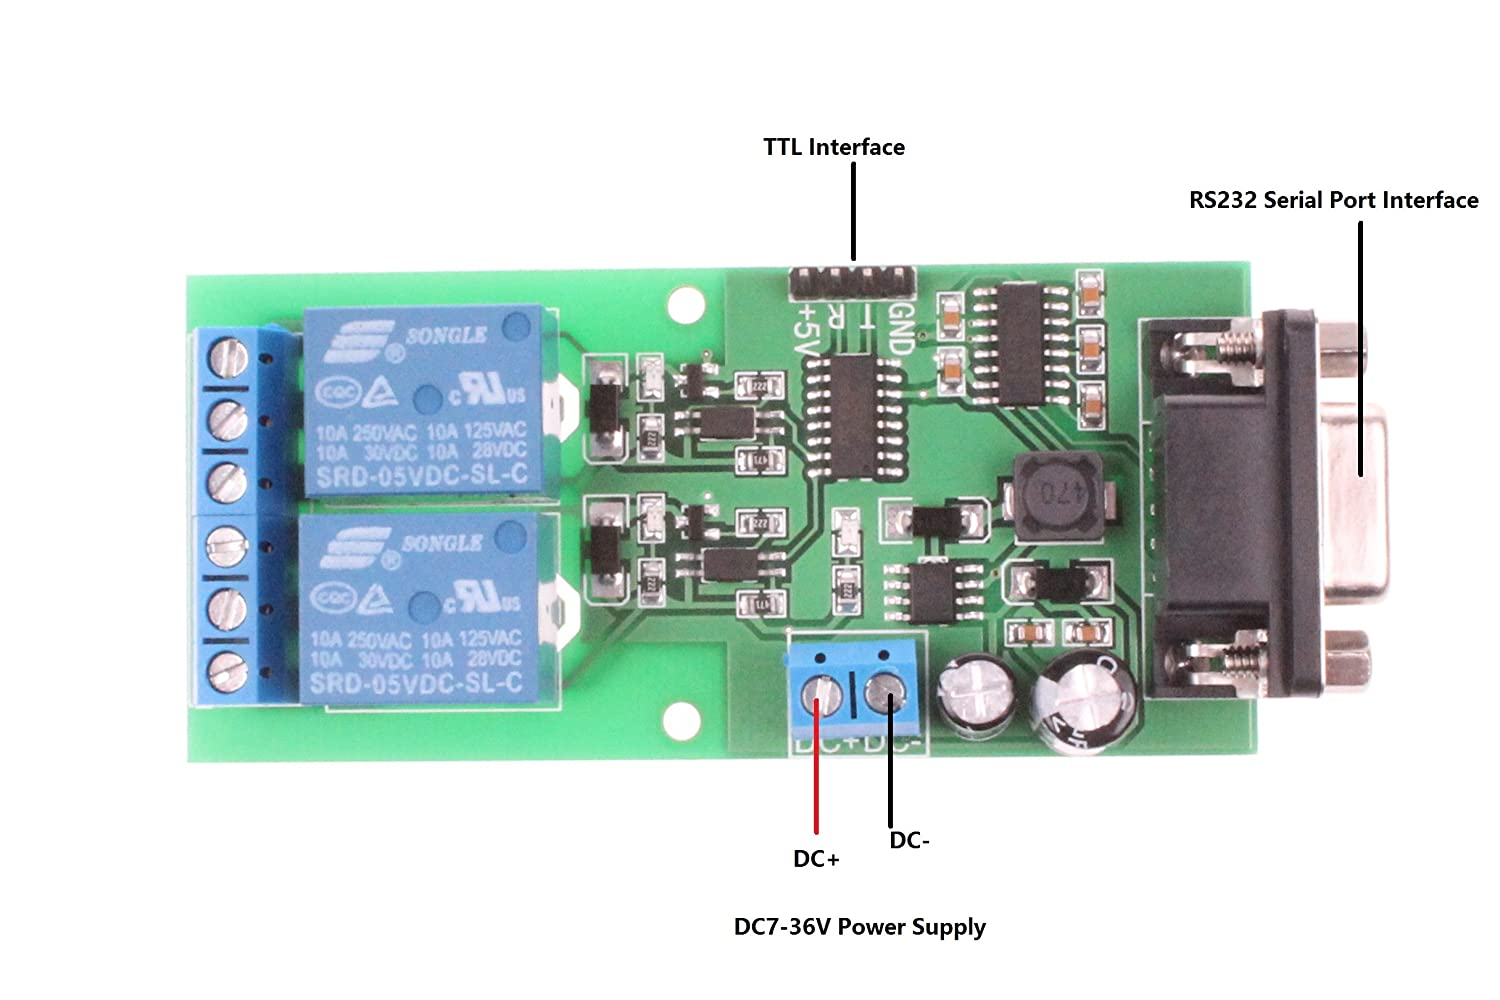 Microcontroller Serial Communication 2 Channel Relay Rs232 Port Pic Programmer Module Ttl Interface Computer Control Switch Plc Computers Accessories